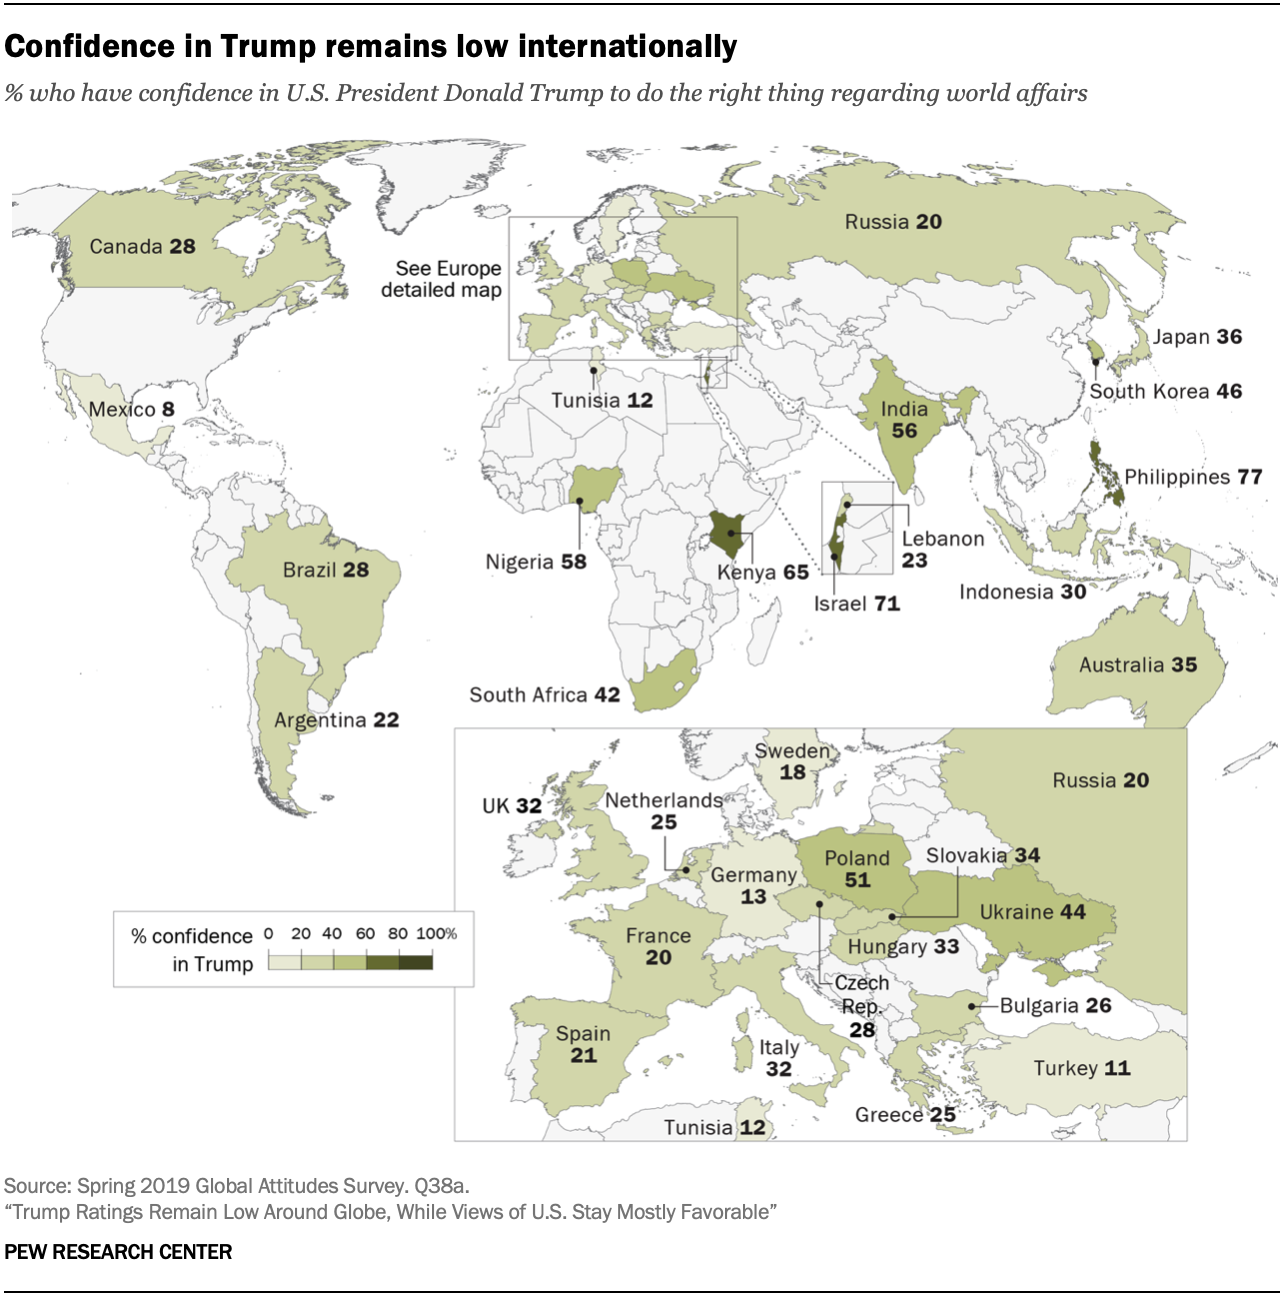 Confidence in Trump remains low internationally